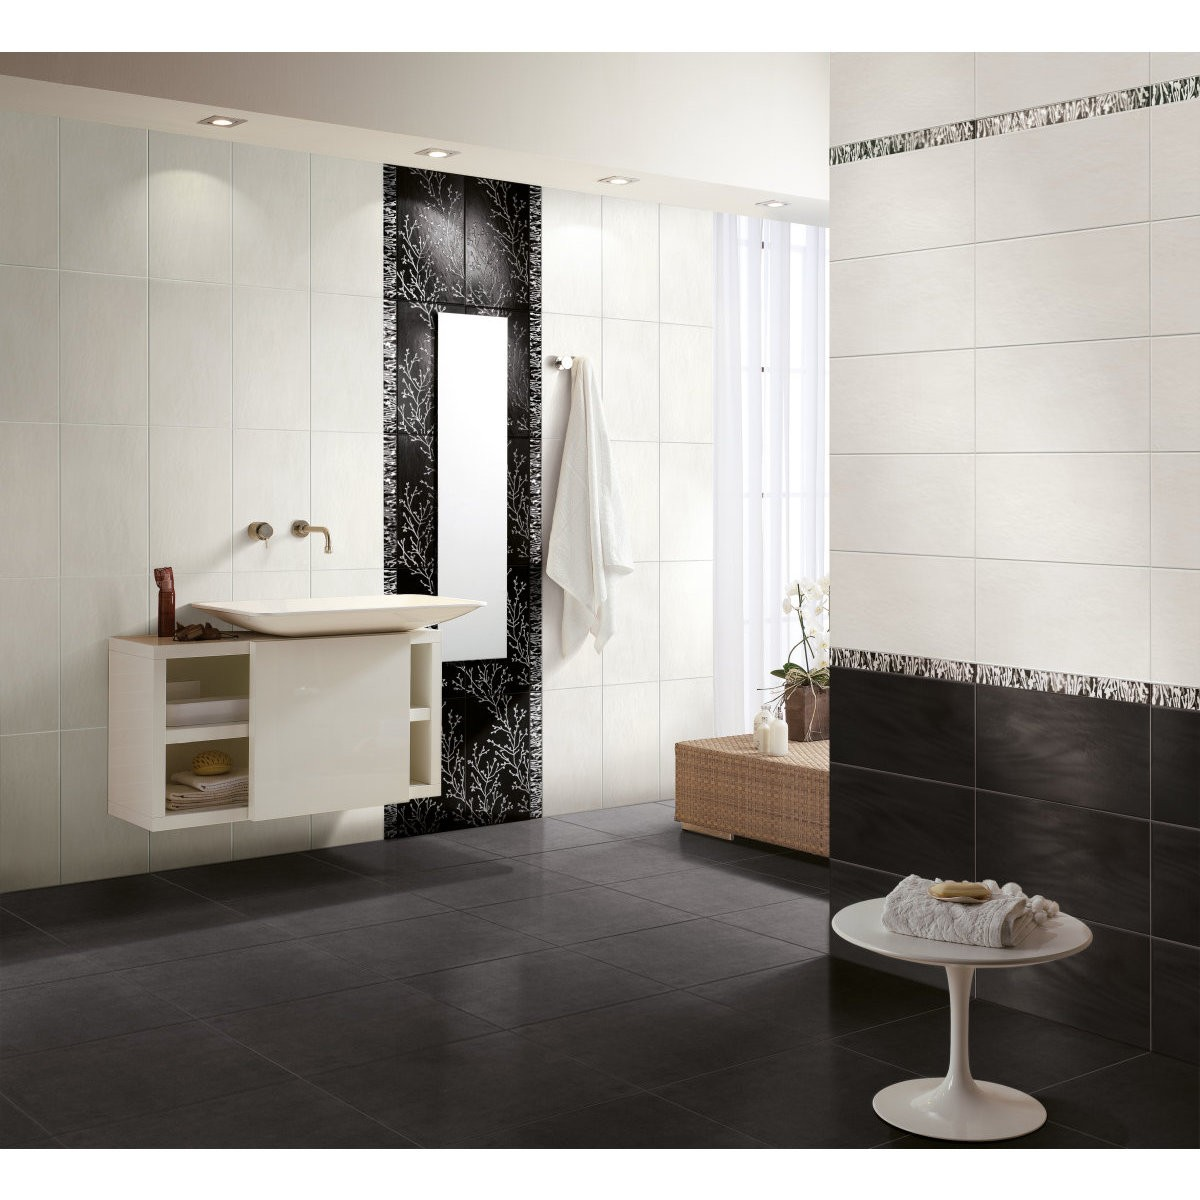 carrelage mural salle de bain point p salle de bain id es de d coration de maison 0gynebxlvm. Black Bedroom Furniture Sets. Home Design Ideas